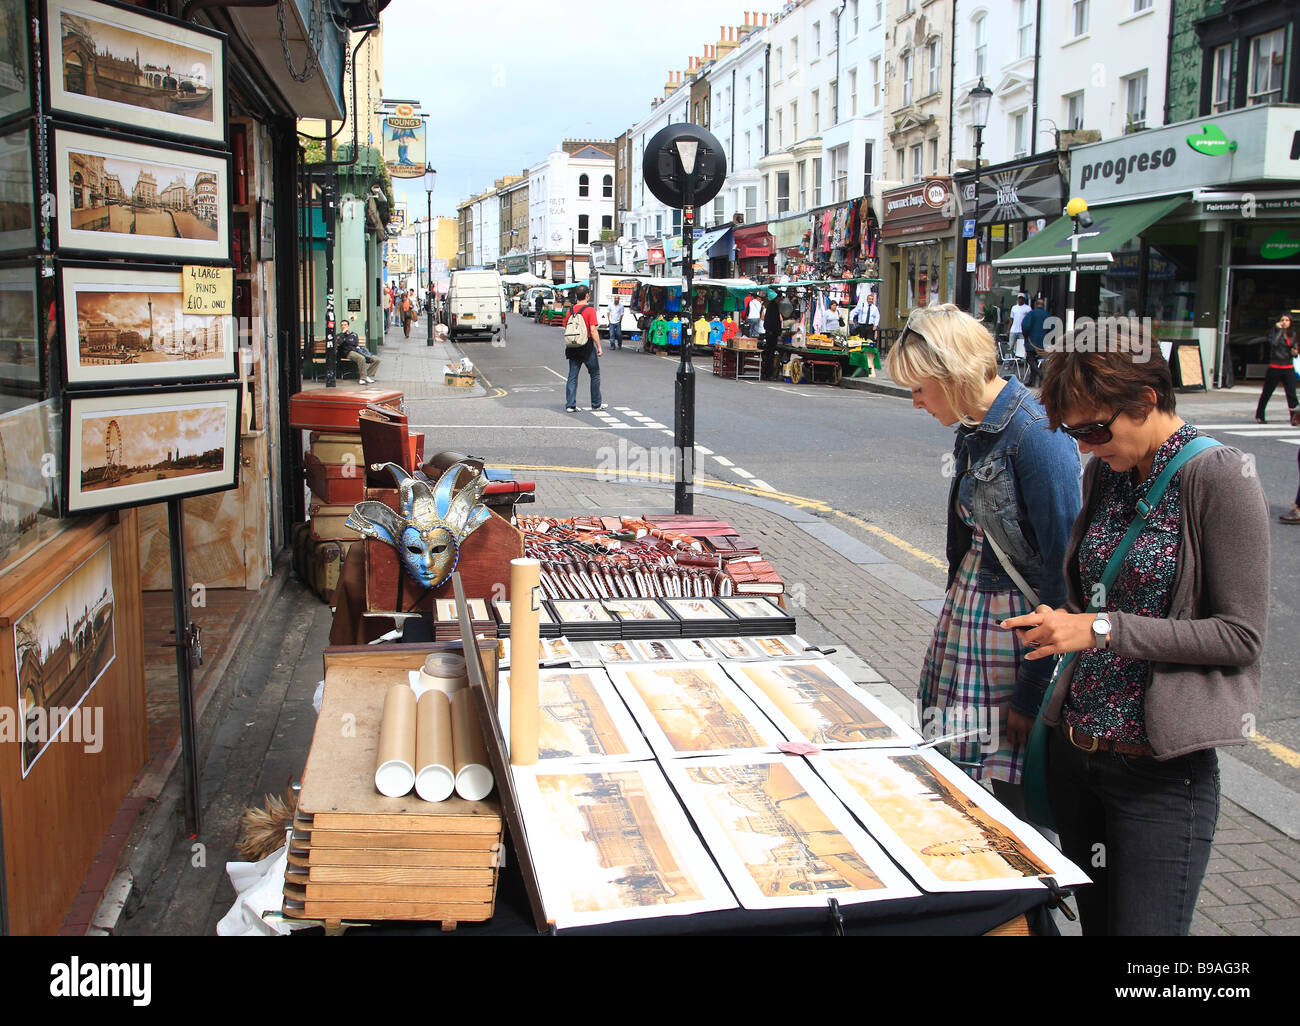 Tourists looking at display outside an Antique shop in Portobello Road,London,England. - Stock Image